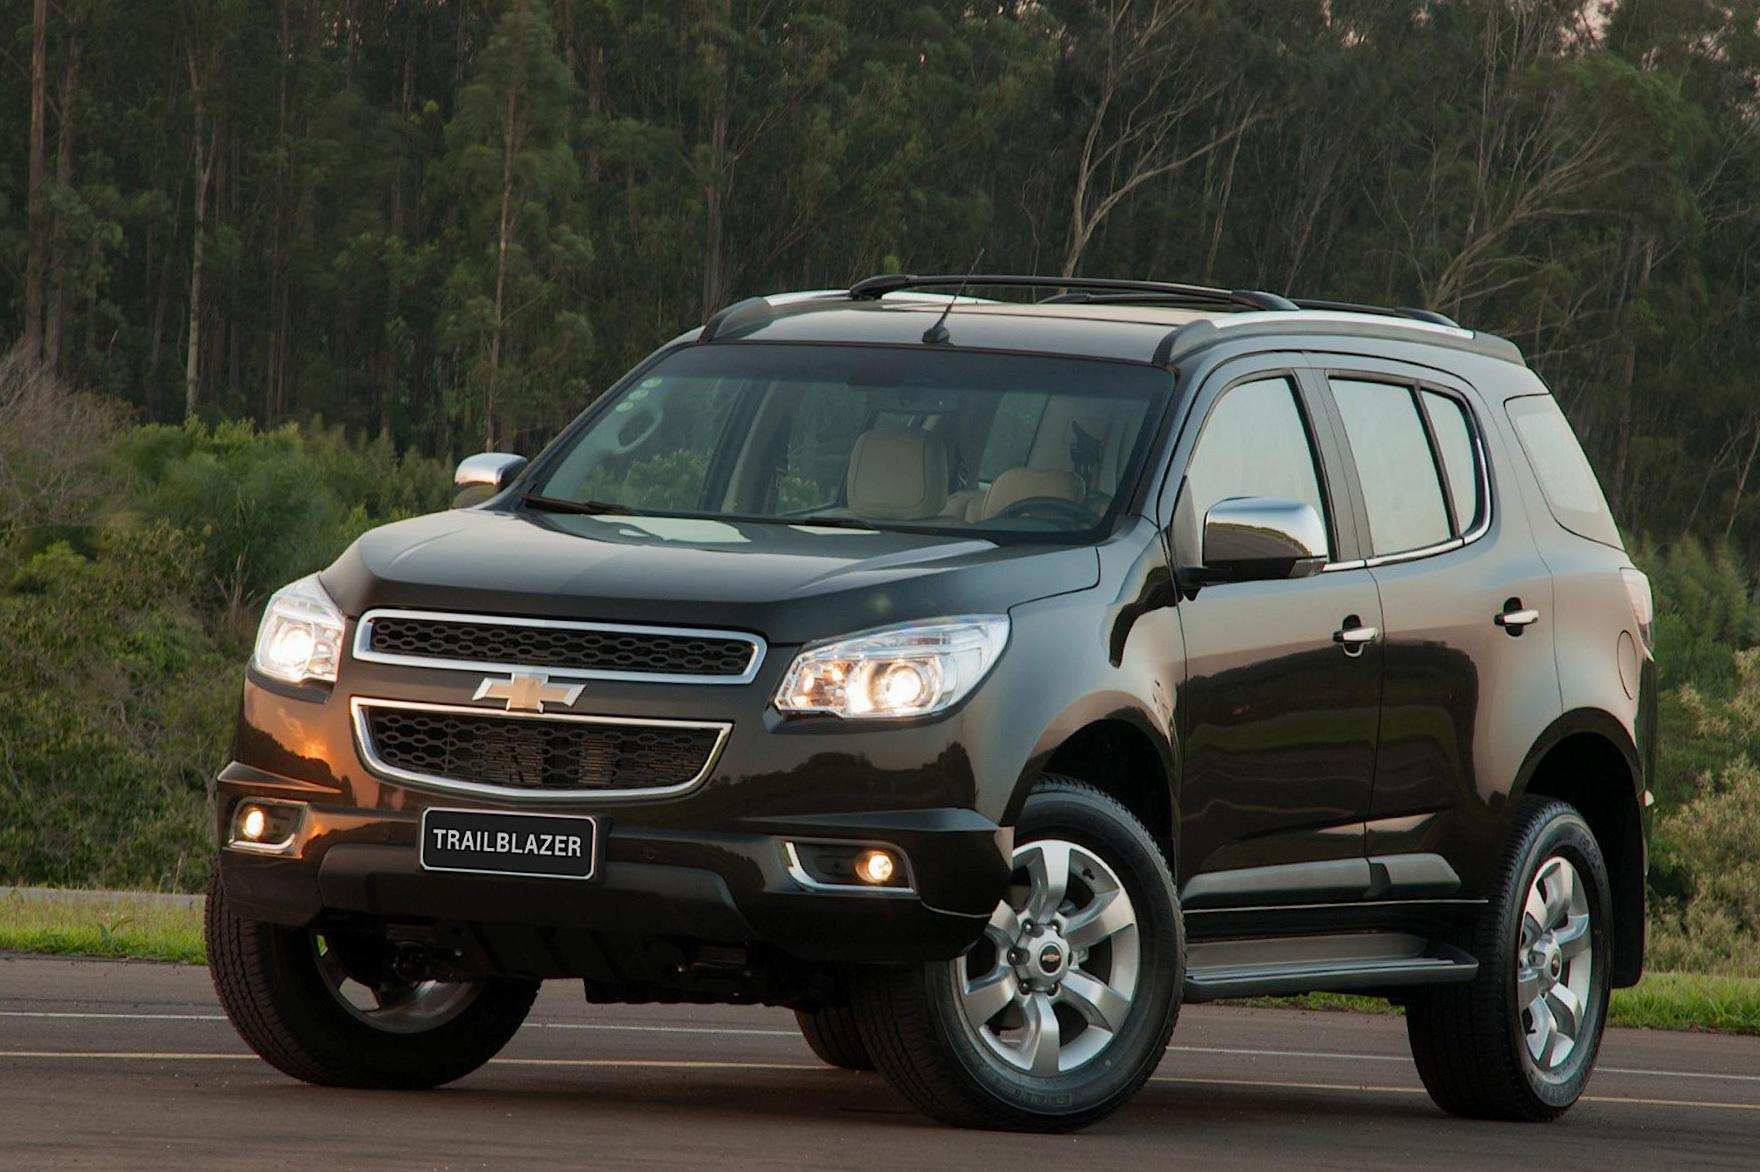 Chevrolet Trailblazer new 2015